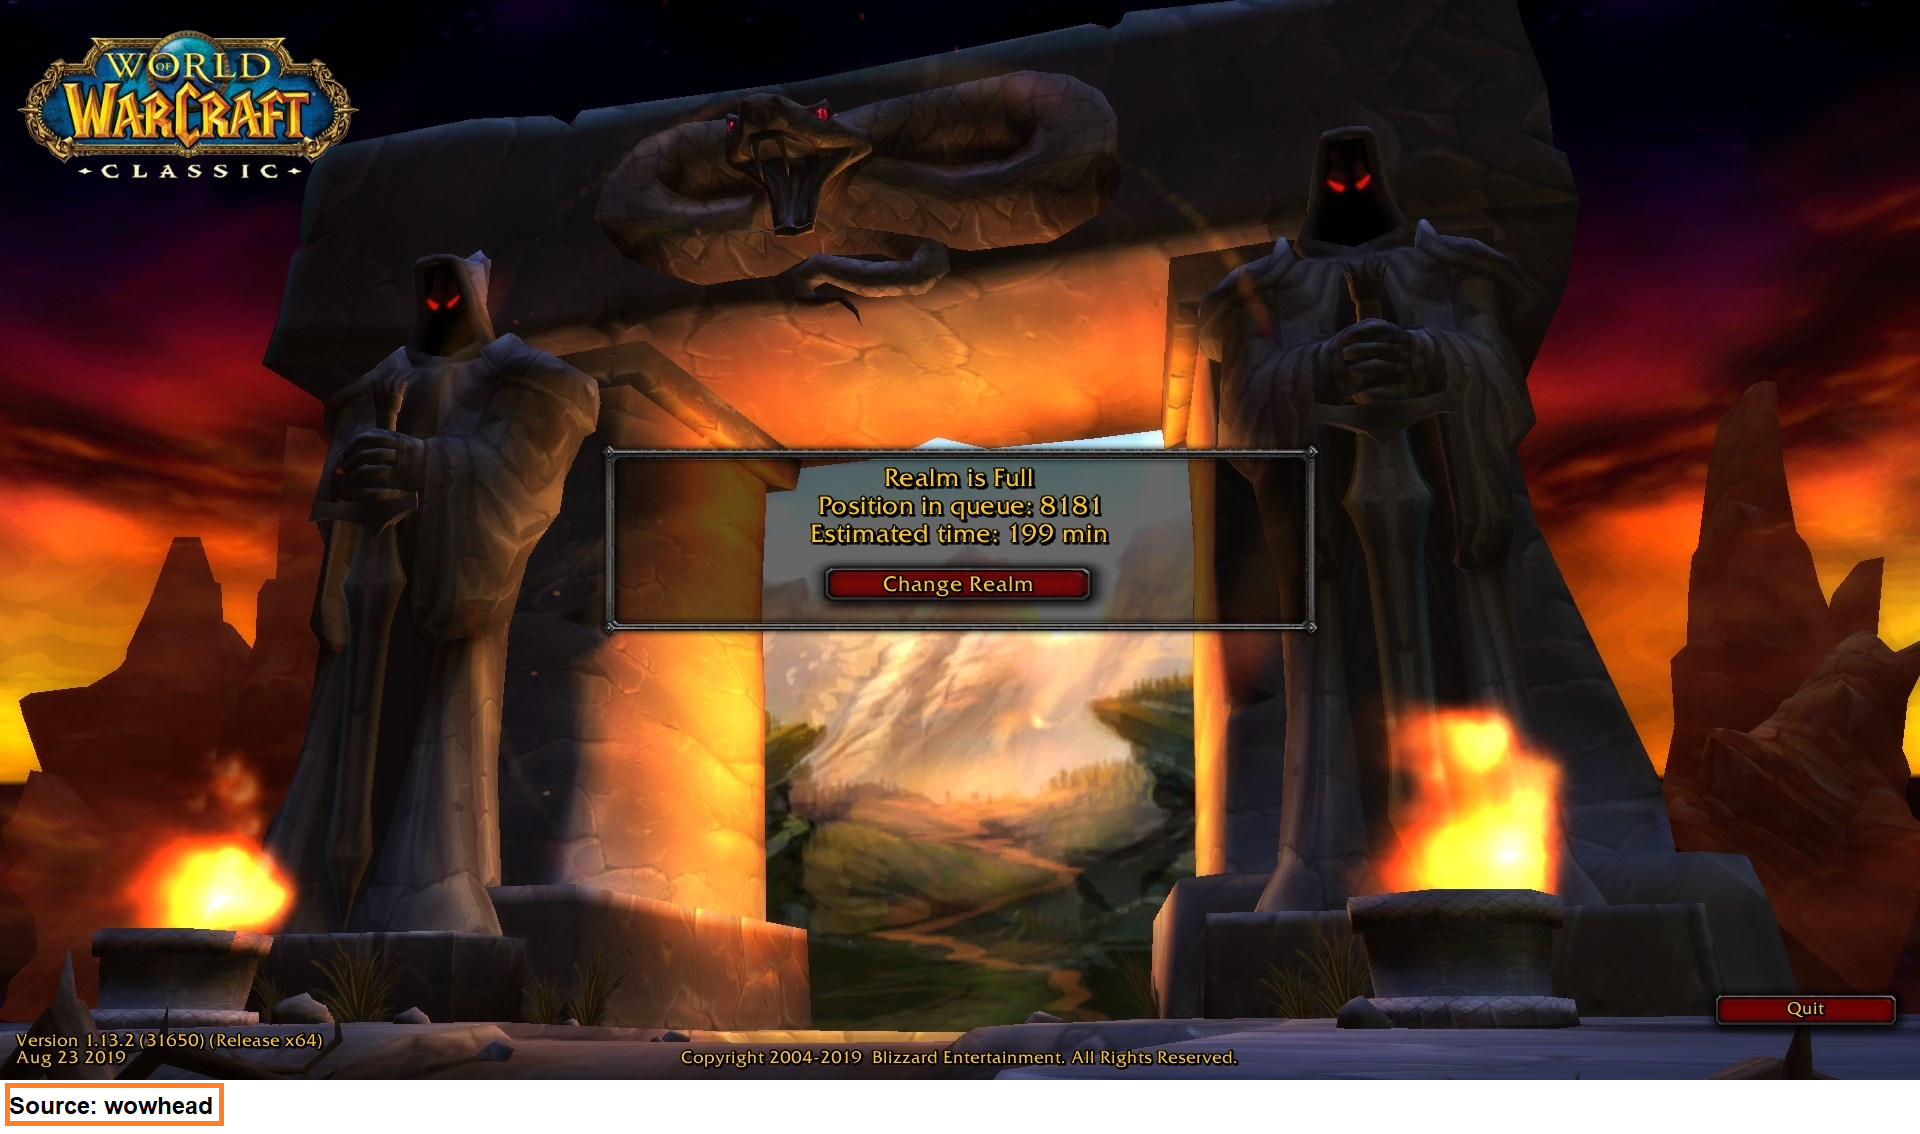 Activision Blizzard: WoW Classic Launch Revitalizes A